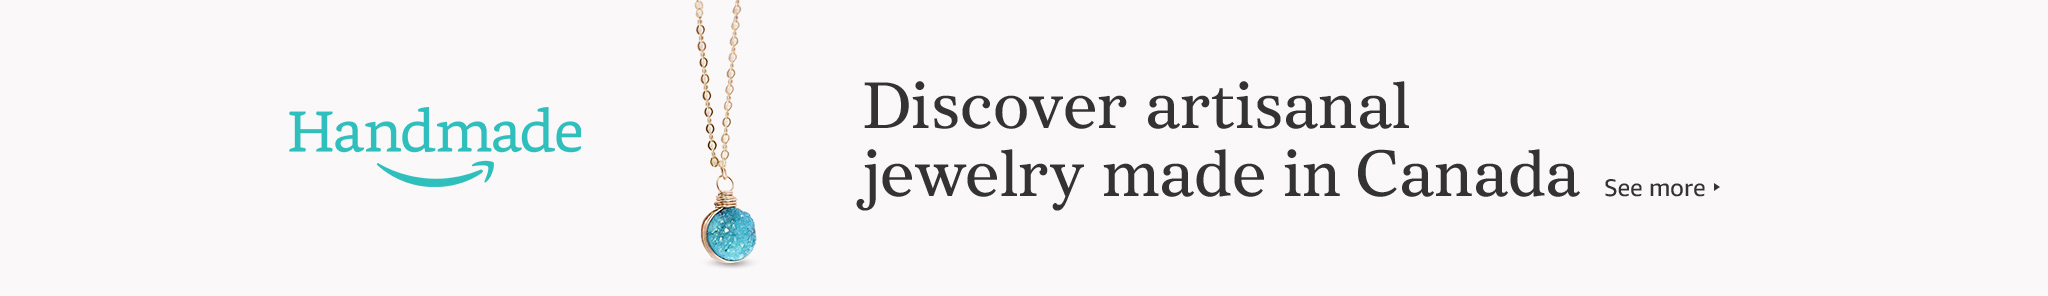 Discover artisanal jewelry made in Canada